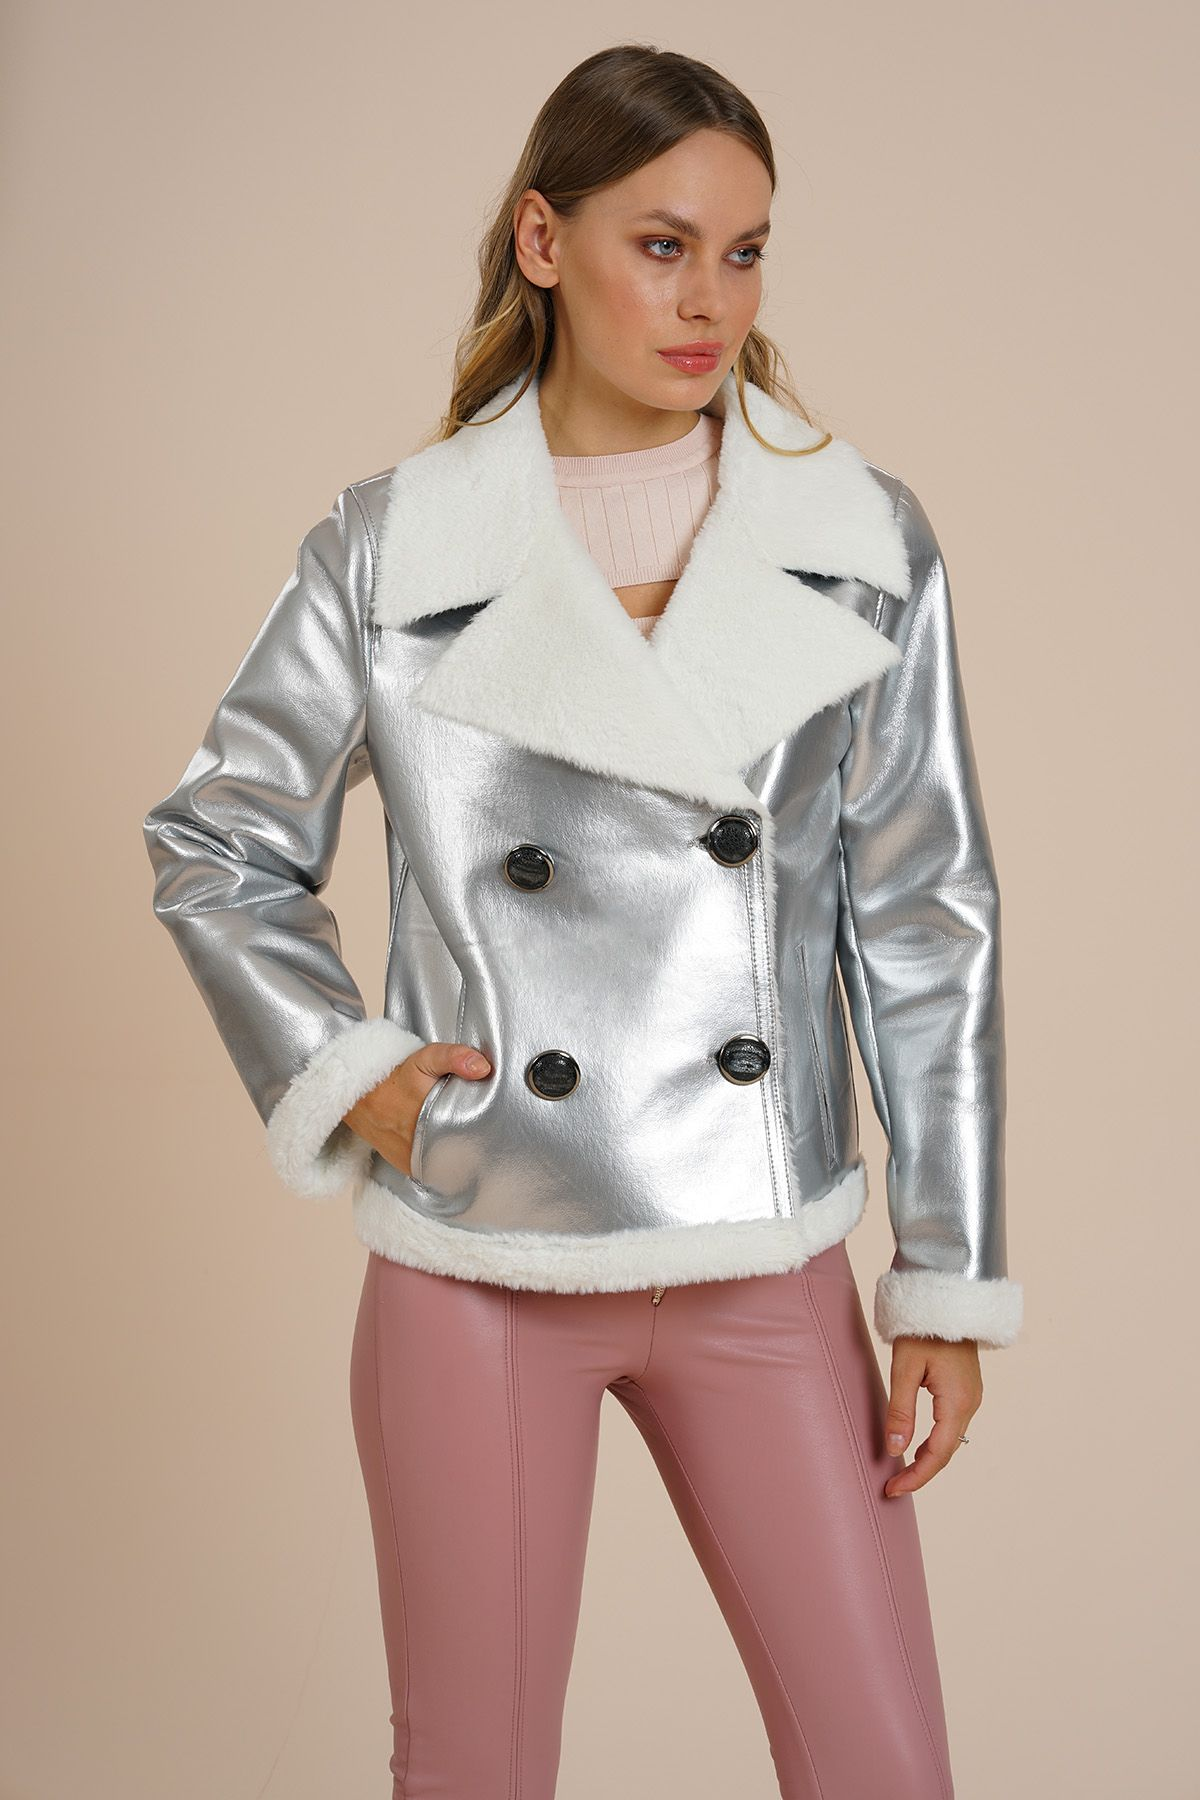 Mirror - Women's Special Edition Faux Fur Jacket -  LMTD14 Grey